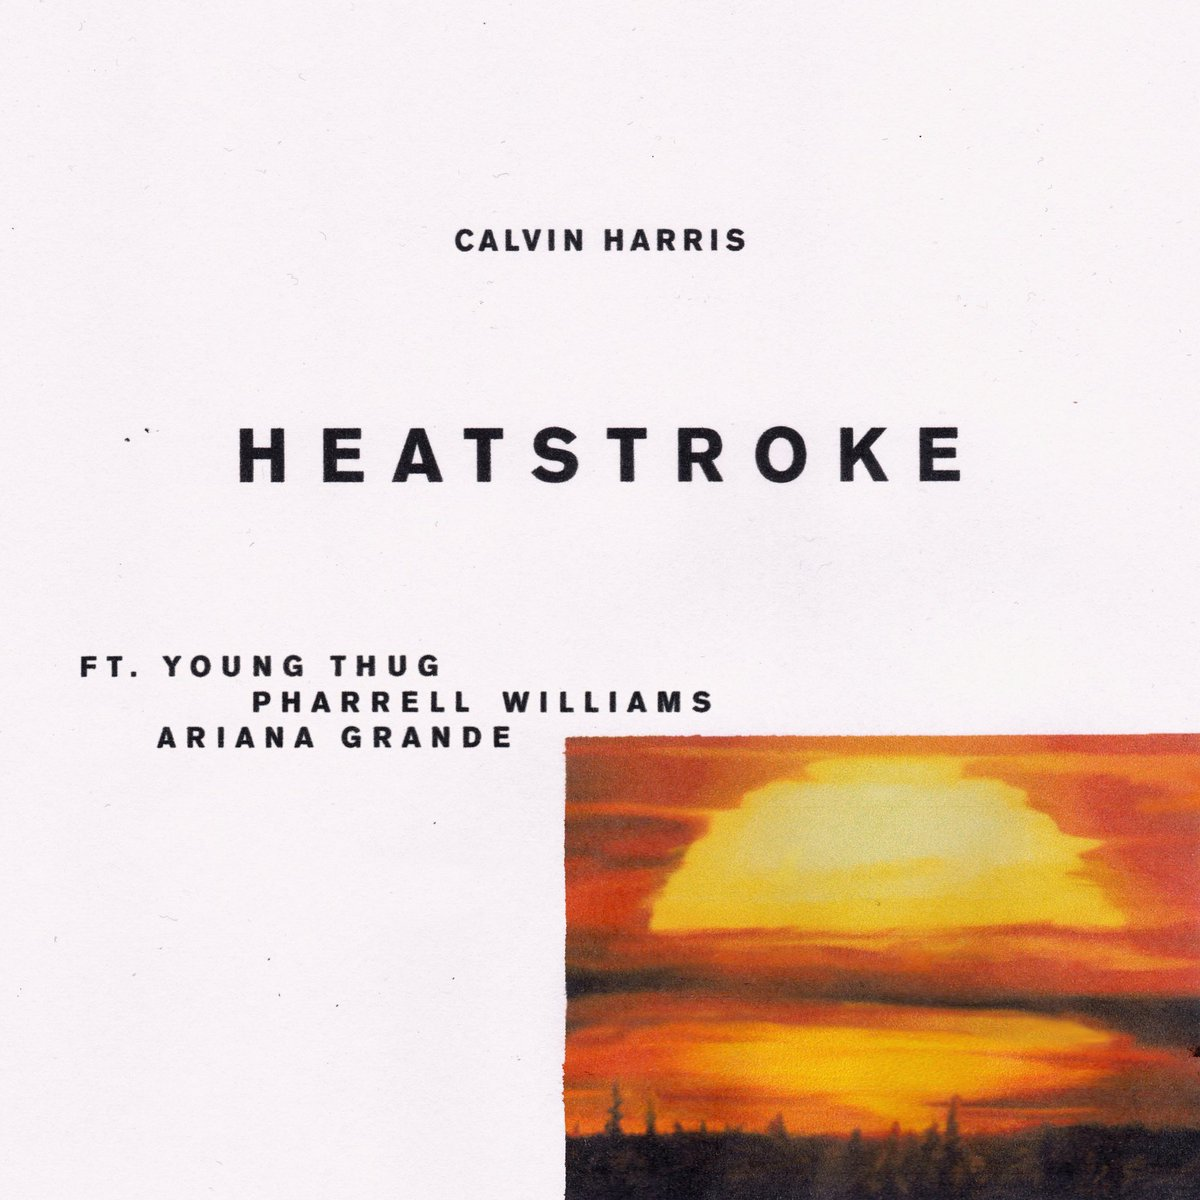 JUST IN: Calvin Harris is releasing a new track with Young Thug, Arian...